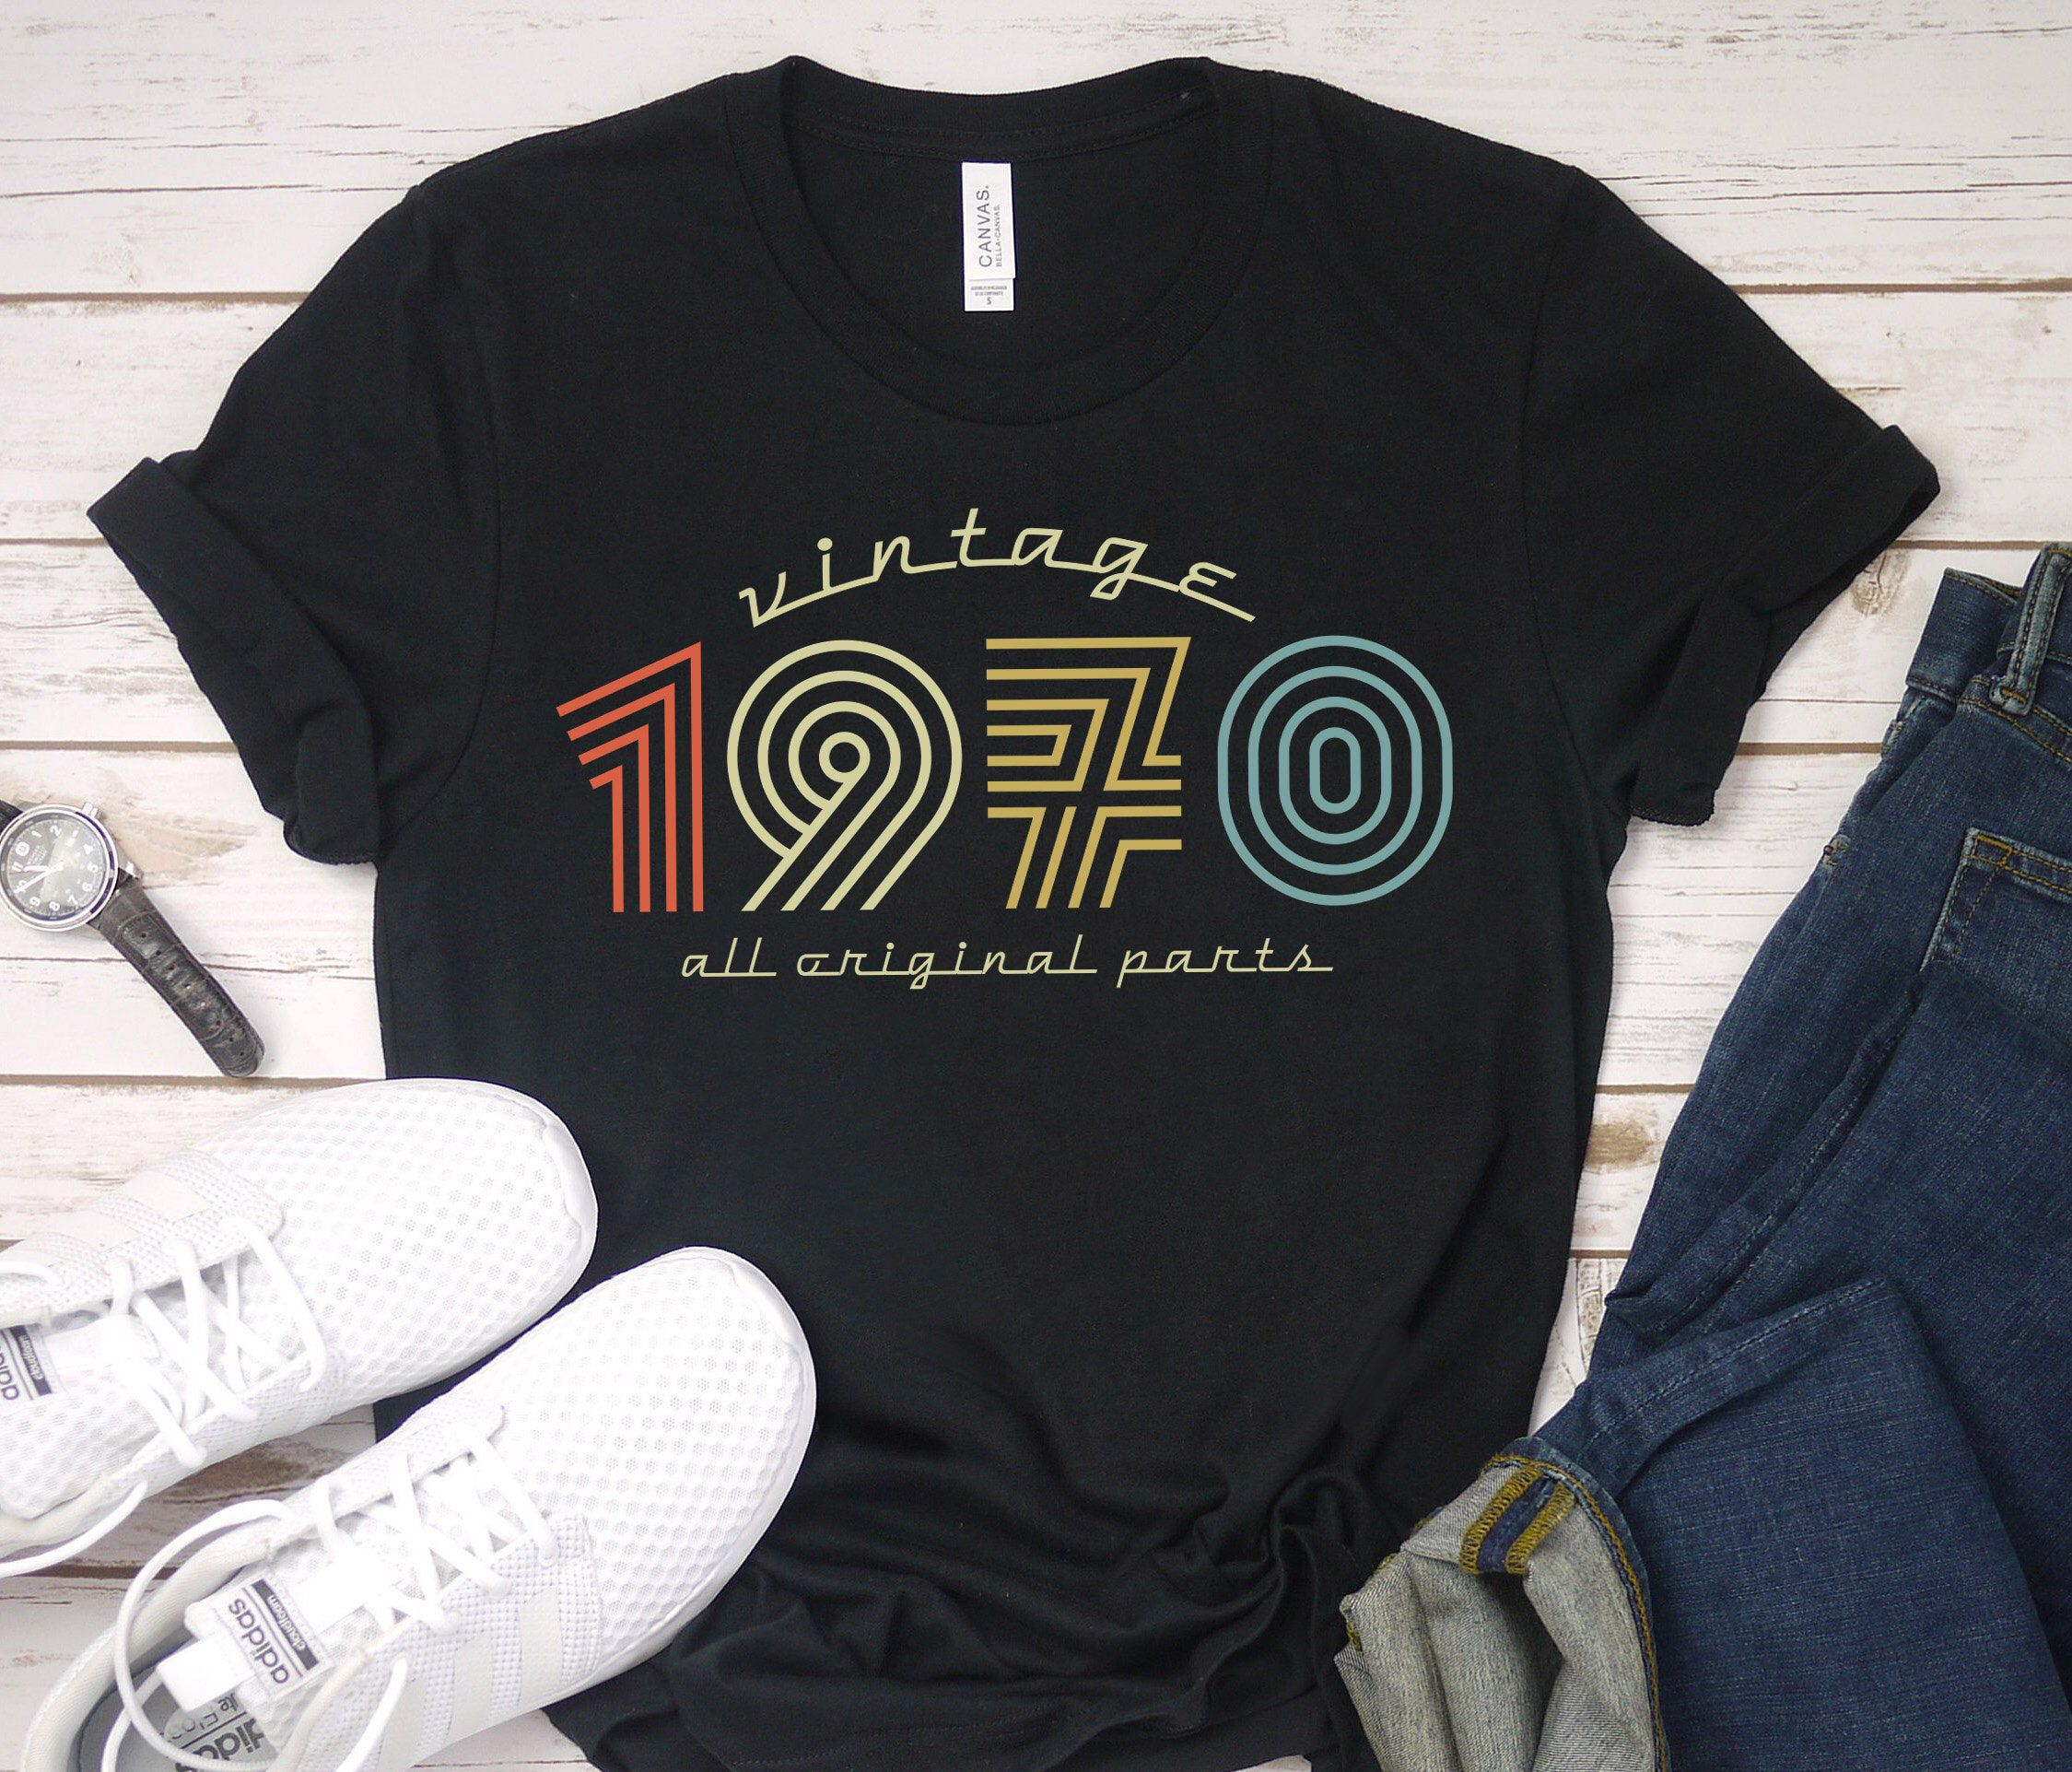 50th Birthday Gift Idea for Women and Men - Vintage 50 Birthday Gift for Her or Him - Born In 1970 Shirt - 50 Anniversary Tshirt for Parents